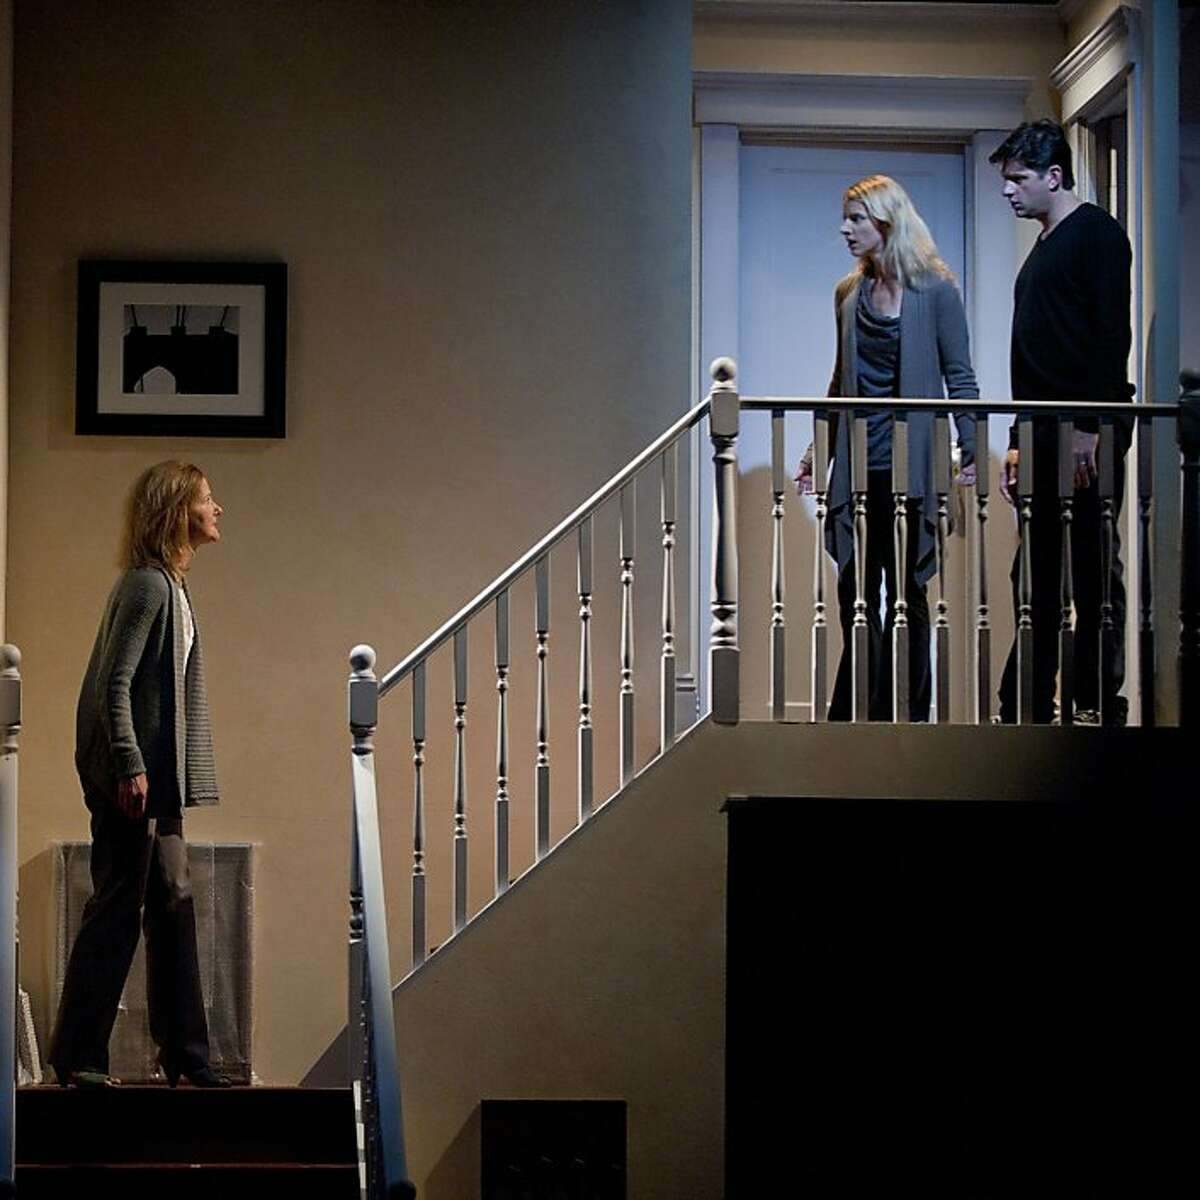 Maddy (Rachel Harker, left) confronts neighbors Jackie (Arwen Anderson) and Alan (Gabriel Marin) after their daughter goes missing in Marin Theatre Company's world premiere of Steve Yockey's